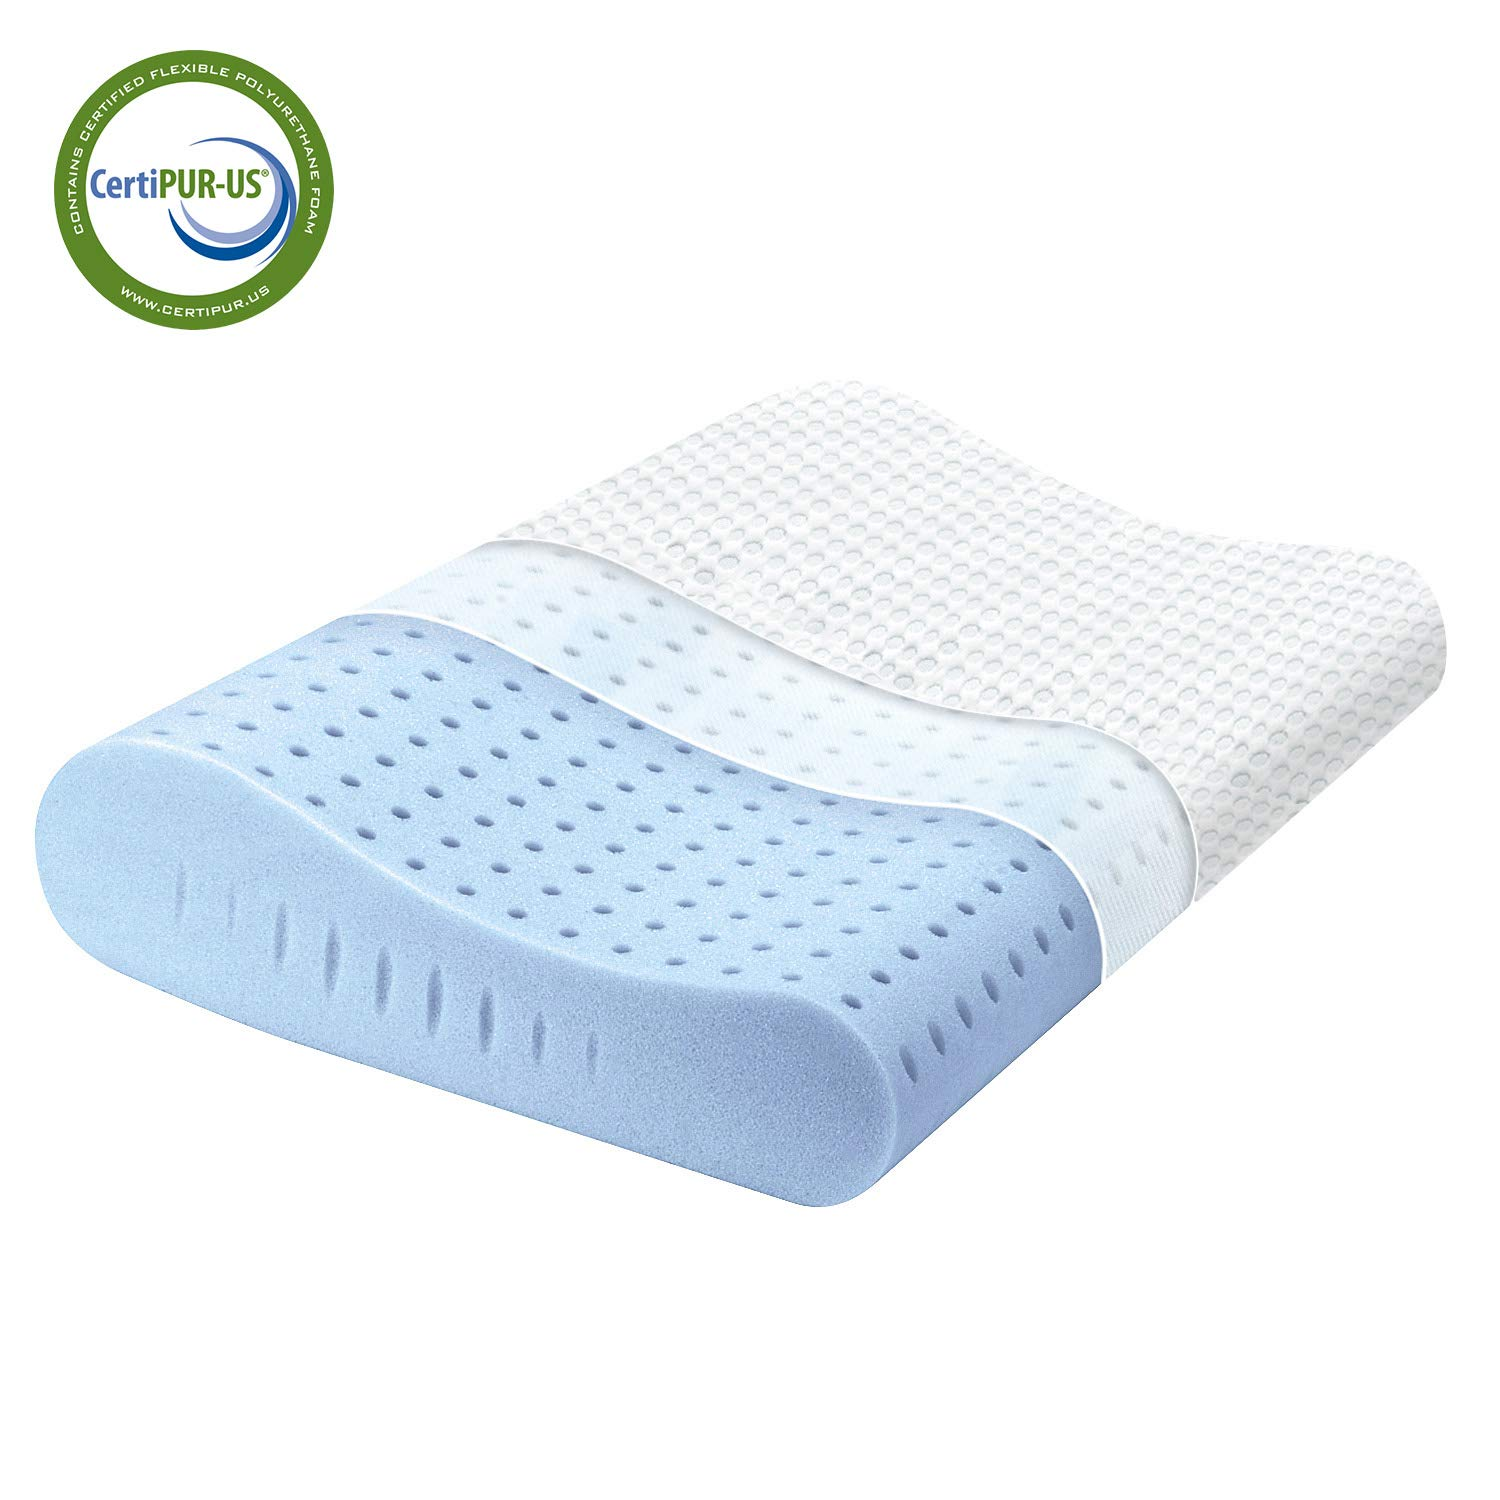 Milemont Memory Foam Pillow, Cervical Pillow for Neck Pain, Orthopedic Contour Pillow Support for Back, Stomach, Side Sleepers, Pillow for Sleeping, CertiPUR-US, Standard Size by Milemont